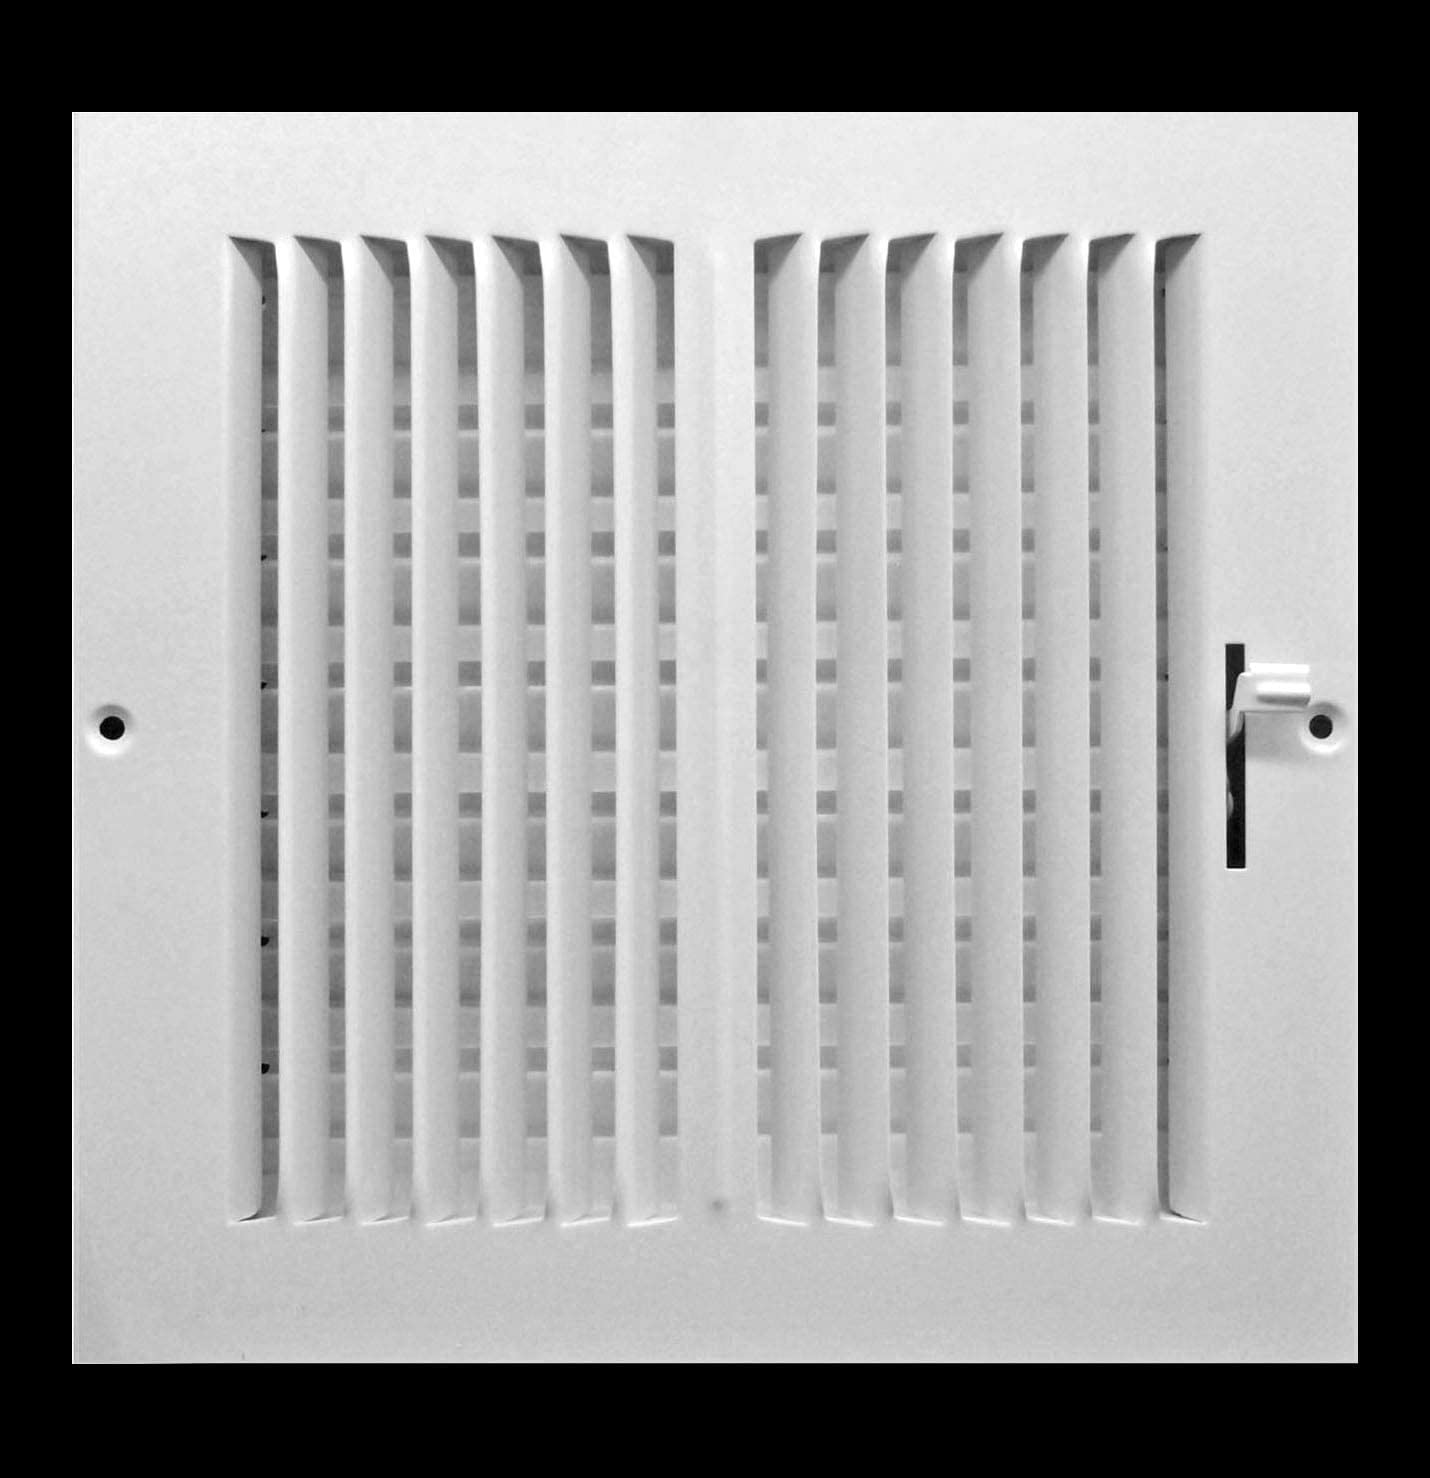 """10""""w x 10""""h 2-Way Fixed Curved Blade AIR Supply Diffuser - Vent Duct Cover - Grille Register - Sidewall or Ceiling - High Airflow - White"""